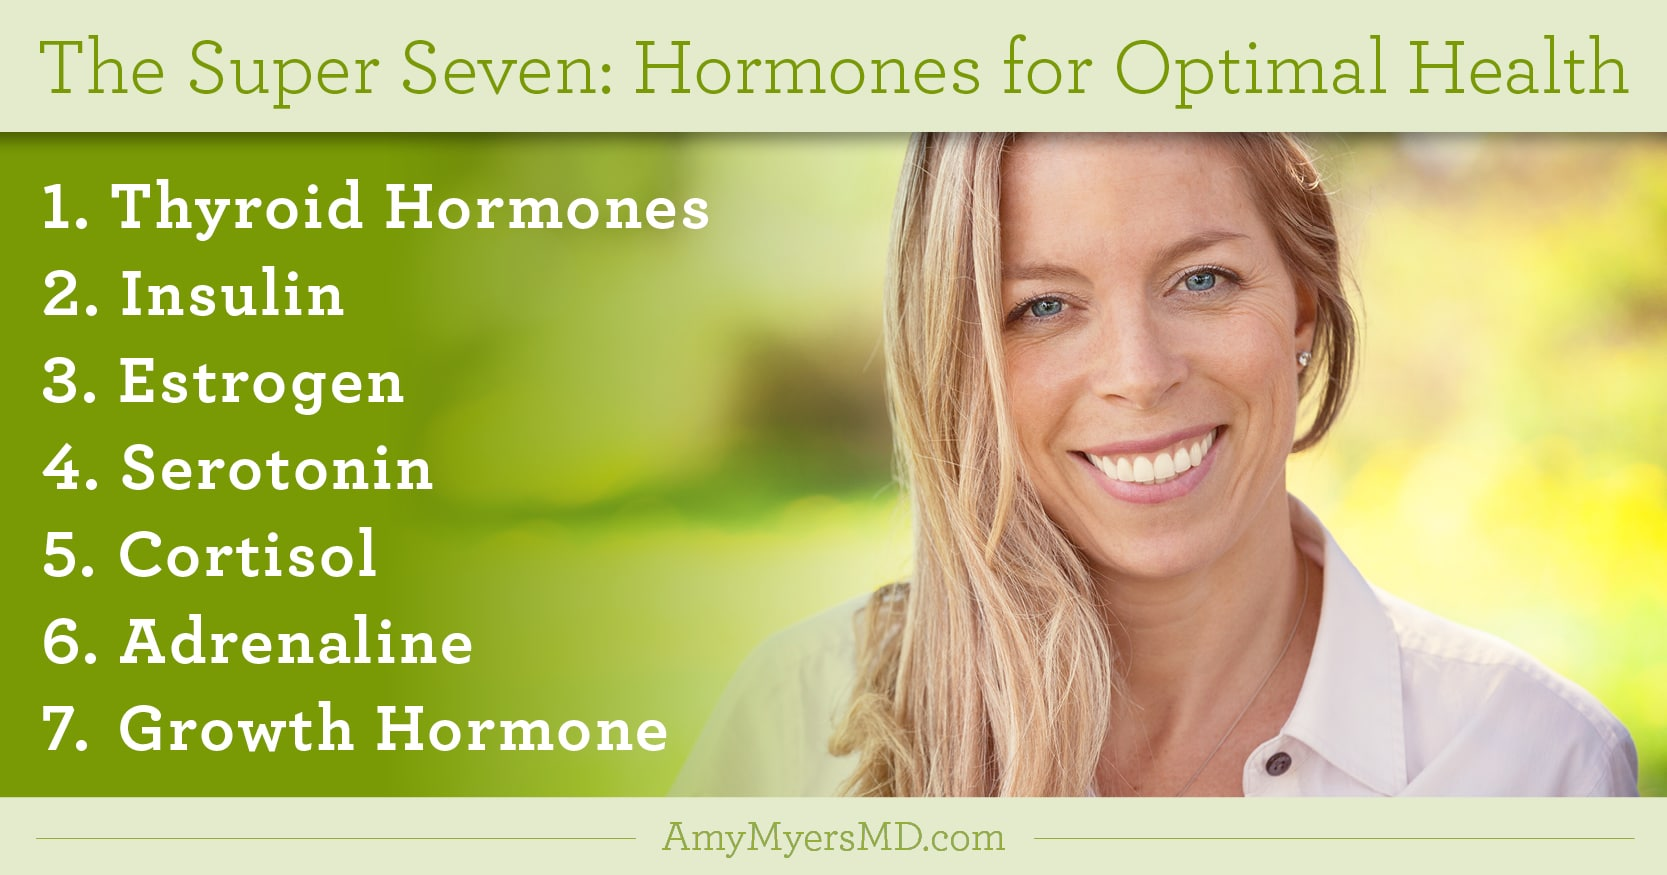 The Super Seven Hormones For Optimal Health - A Smiling Woman - Infographic - Amy Myers MD